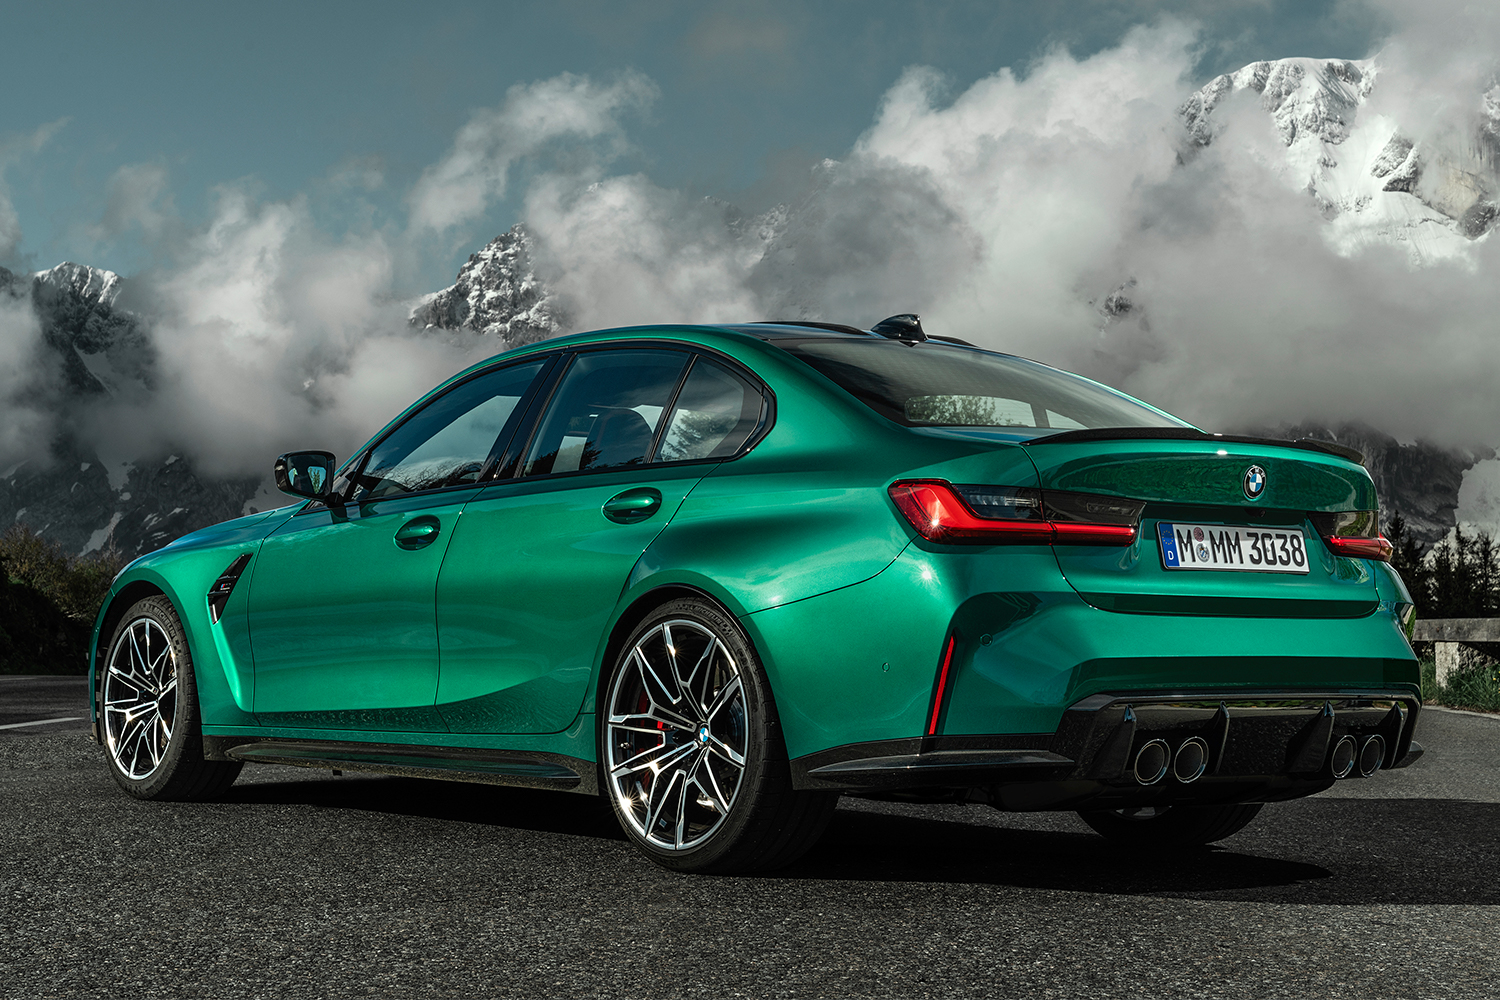 The new BMW M3 Competiton Sedan in green sits on the road with snow-capped mountains covered in clouds in the background